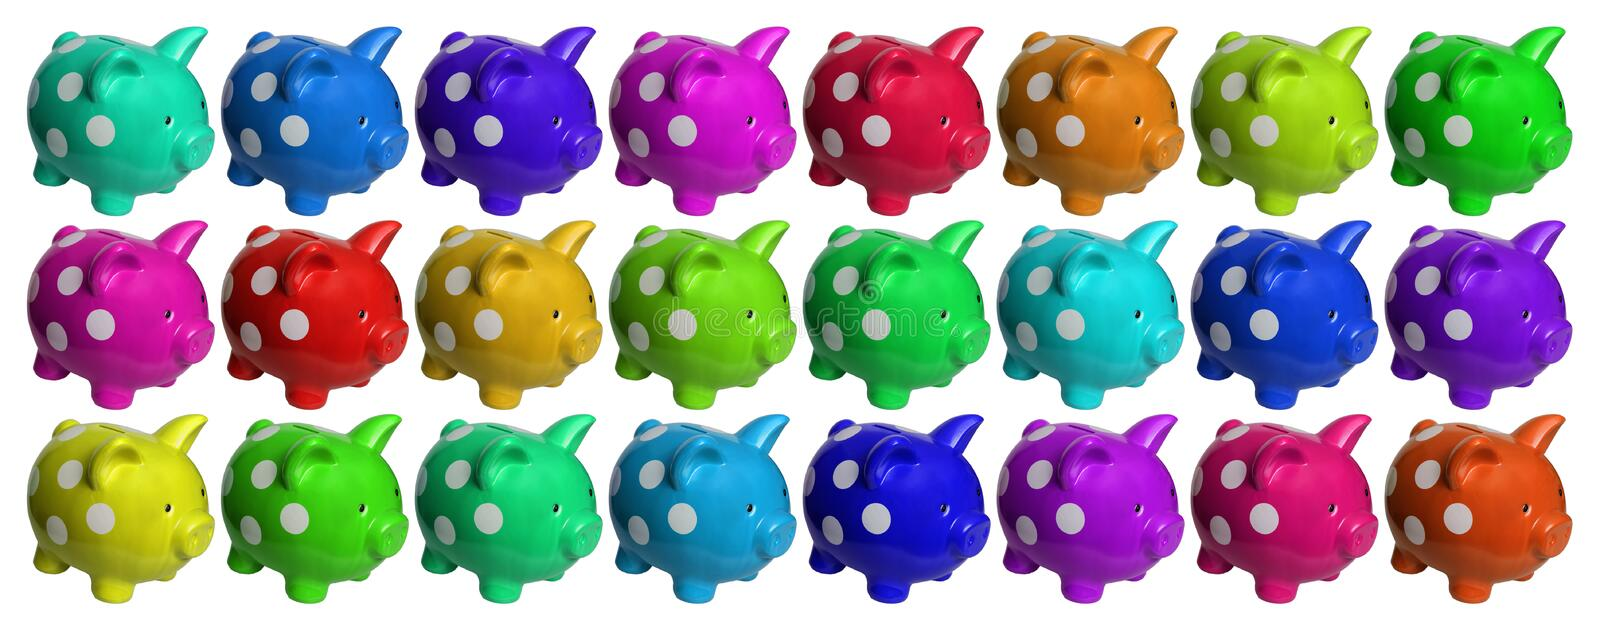 Download Piggy banks stock photo. Image of rainbow, bank, background - 19848622